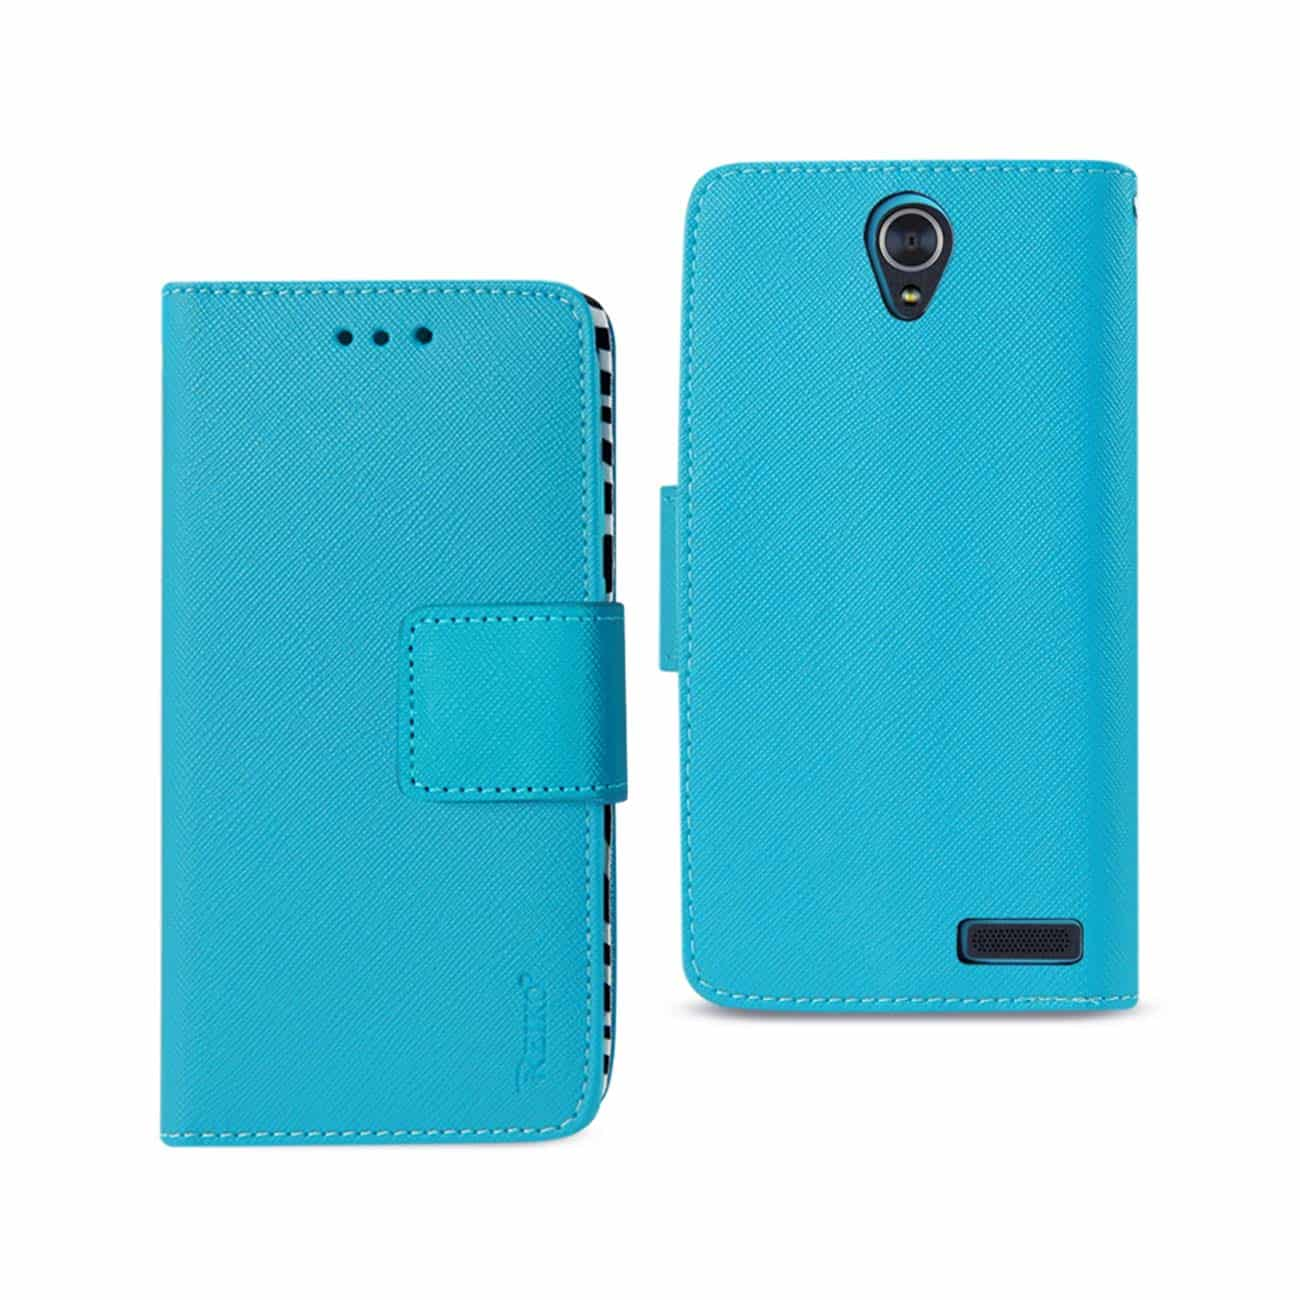 ZTE GRAND X3 WALLET CASE WITH INNER ZEBRA PRINT IN BLUE